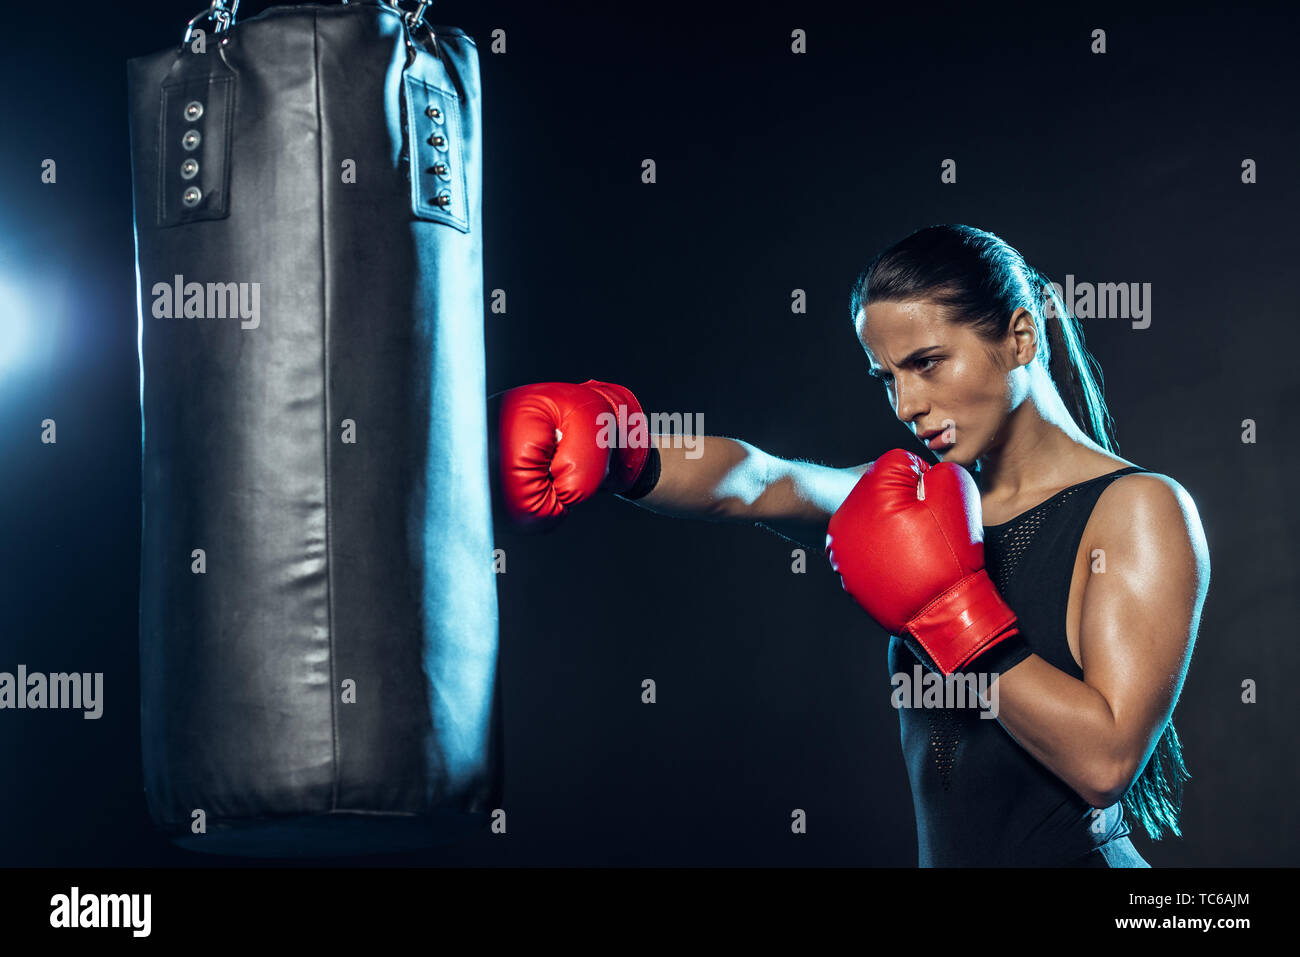 Tired boxer in red boxing gloves training with punching bag on black - Stock Image